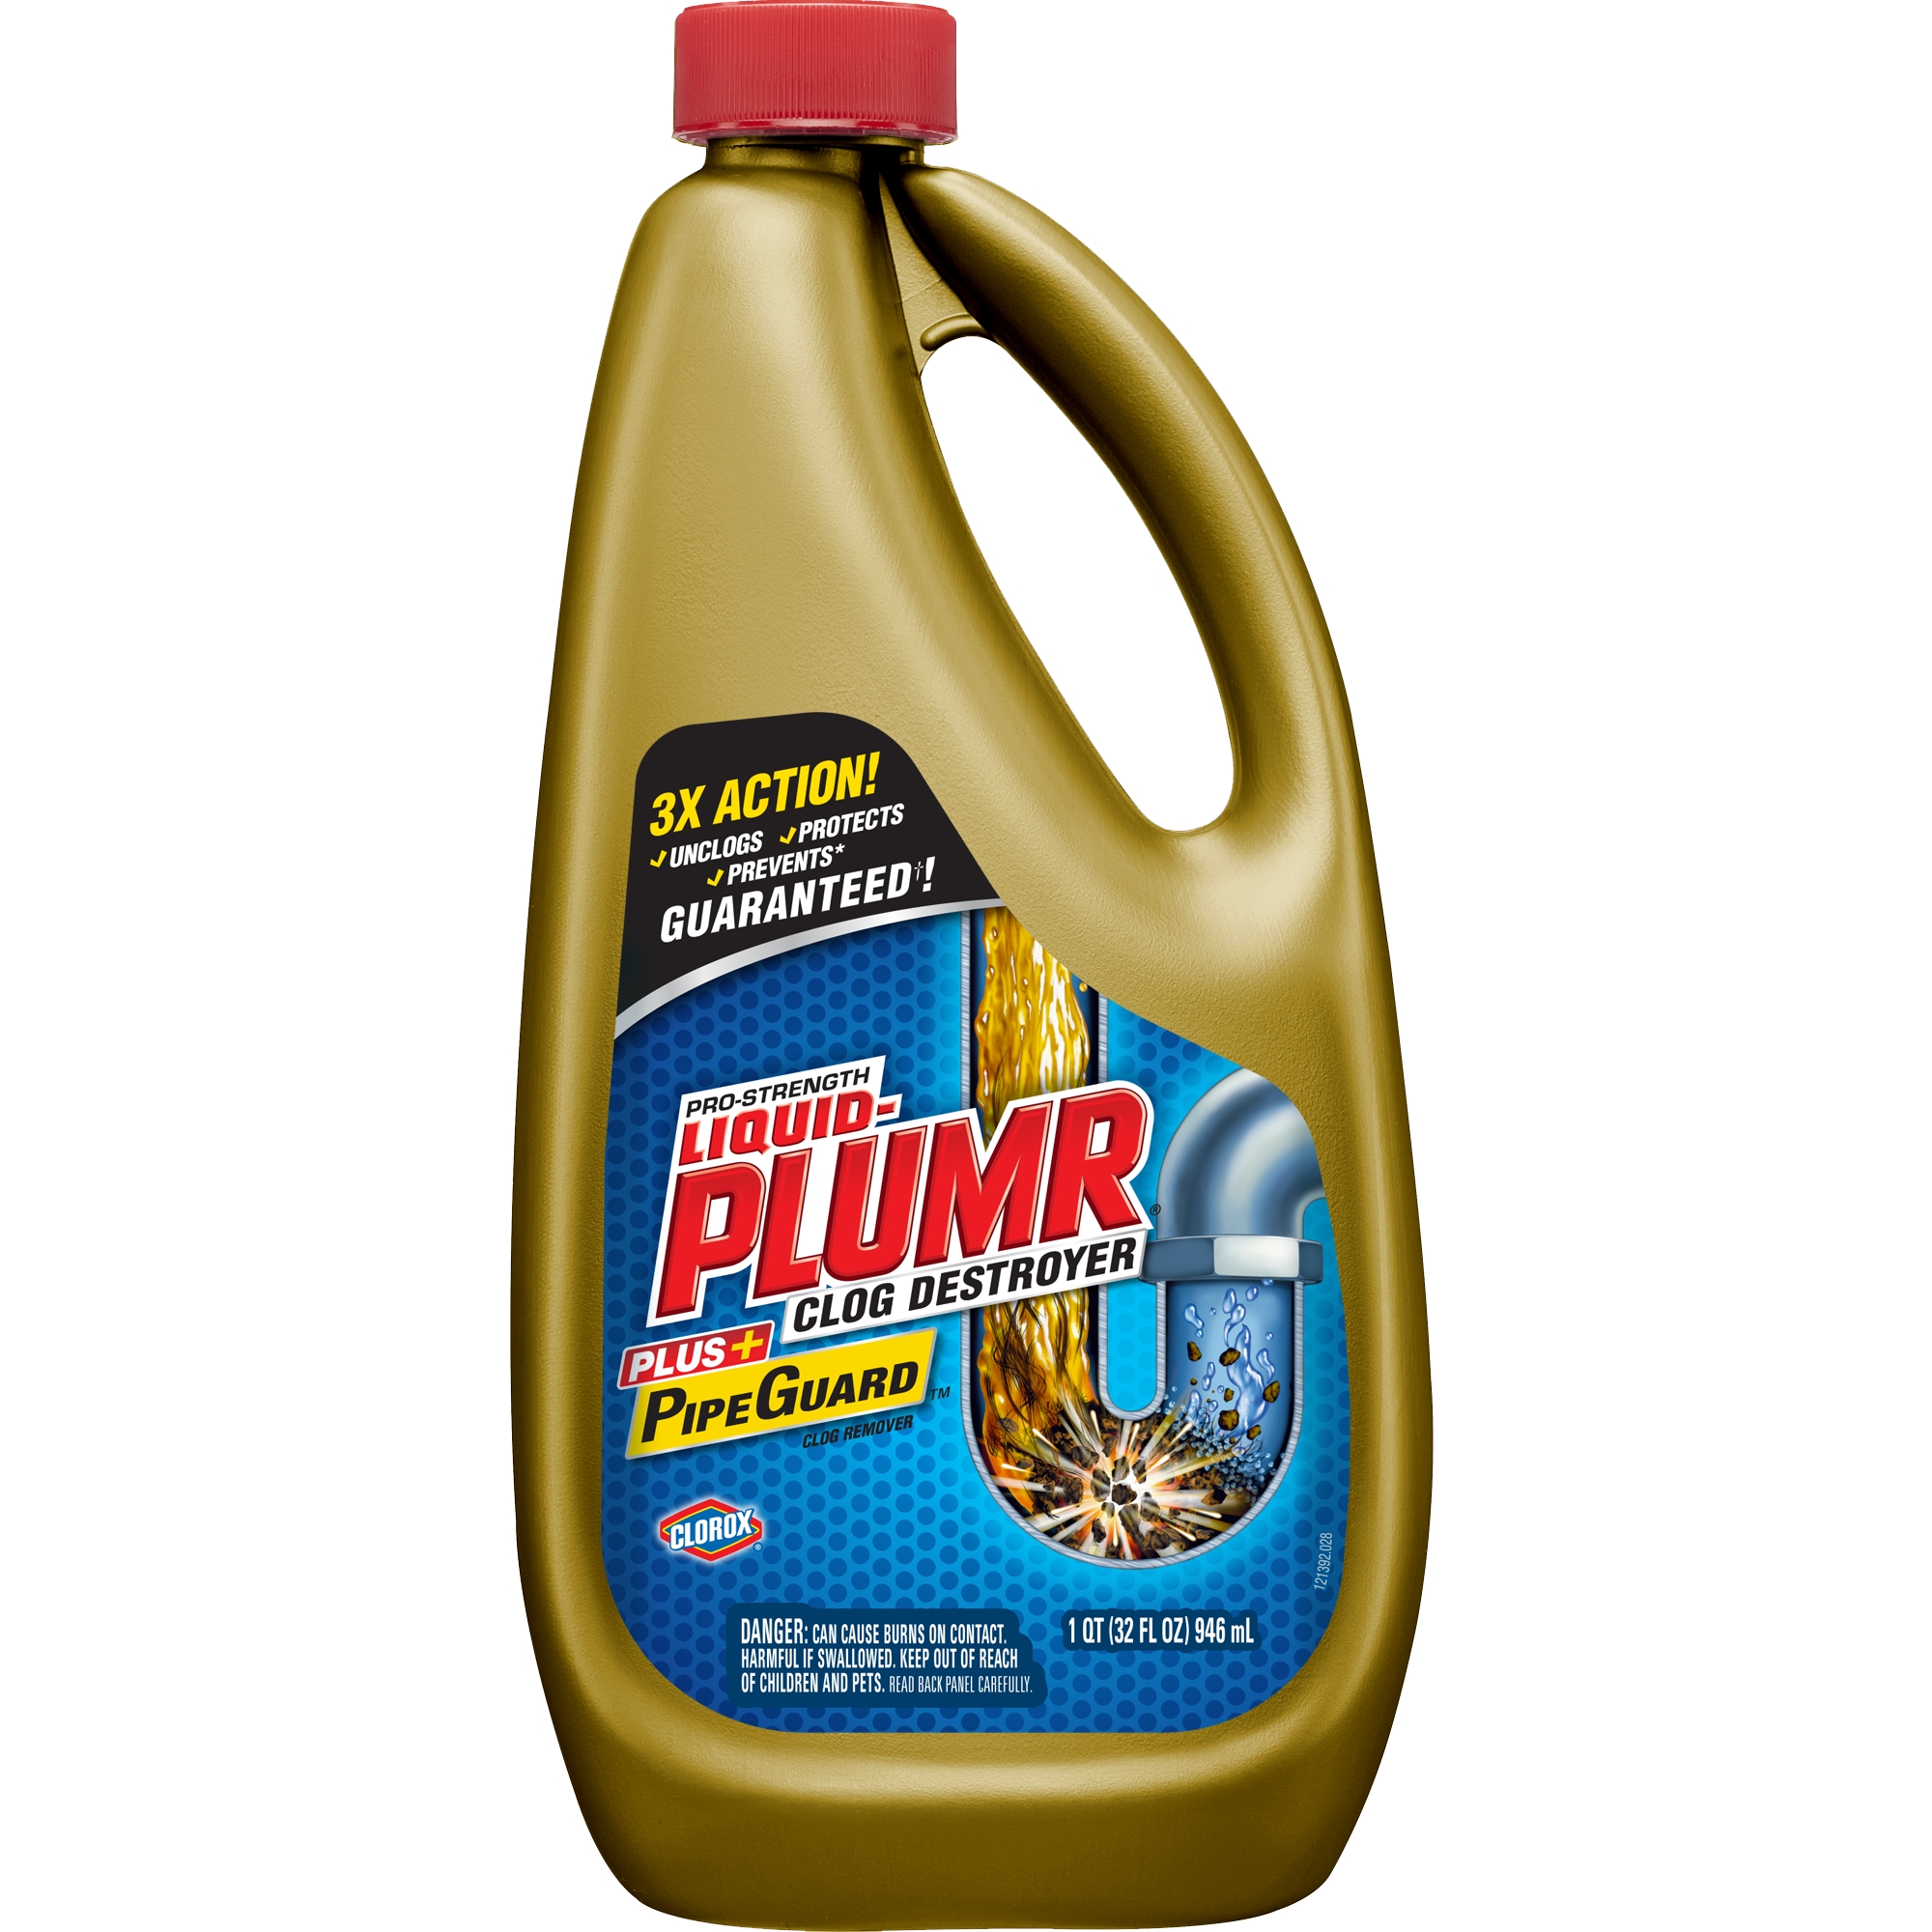 Liquid-Plumr Pro-Strength Drain Cleaning Clog Remover, Full Clog Destroyer, 32 oz